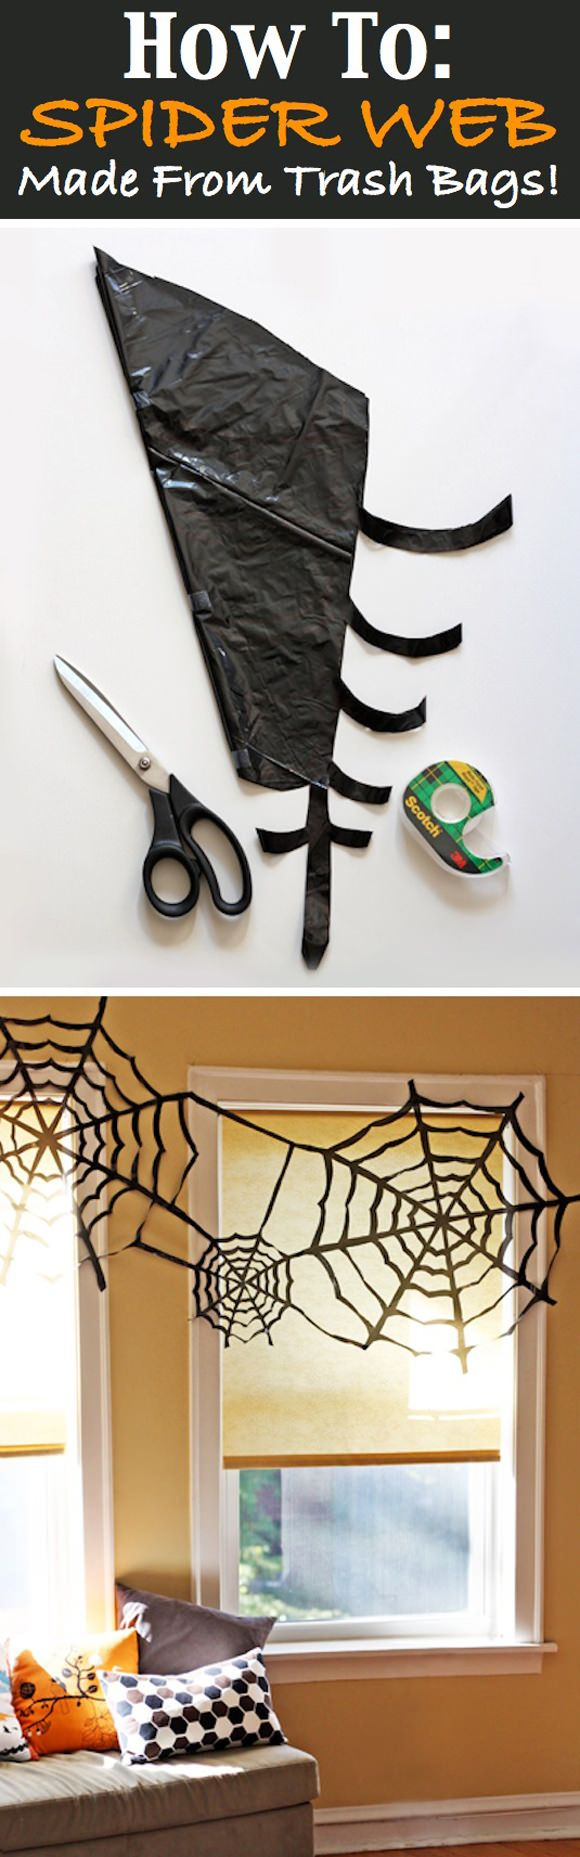 5 Spooky Spider Web Projects For Halloween Diy Crafts Tutorials